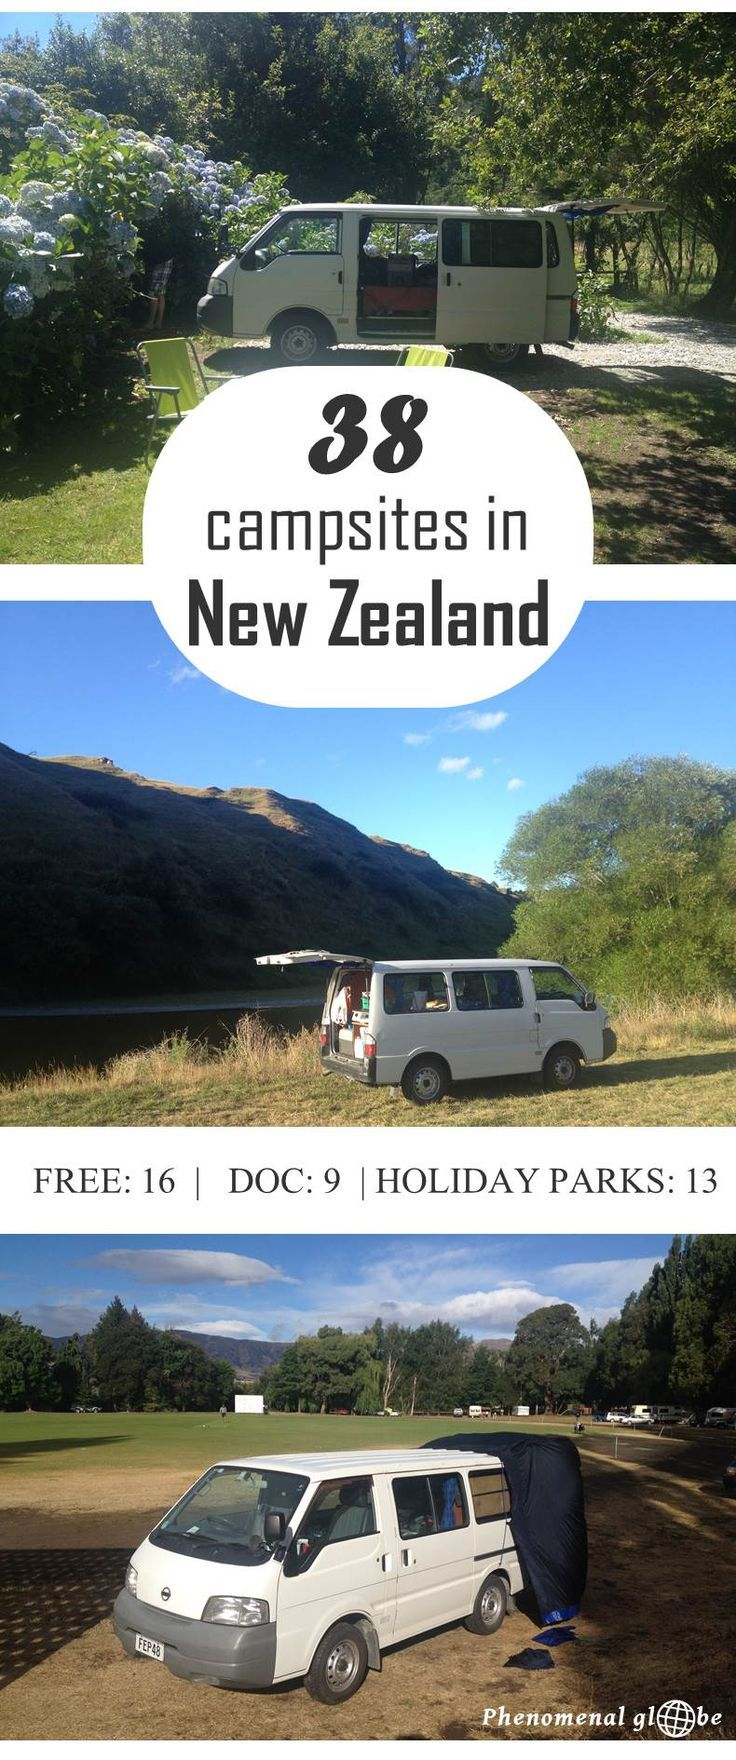 Camping in New Zealand, highly recommended! Where to camp? Check out these 38 great sites I stayed at the North and South Island (free campsites, DOC sites and Holiday Parks).